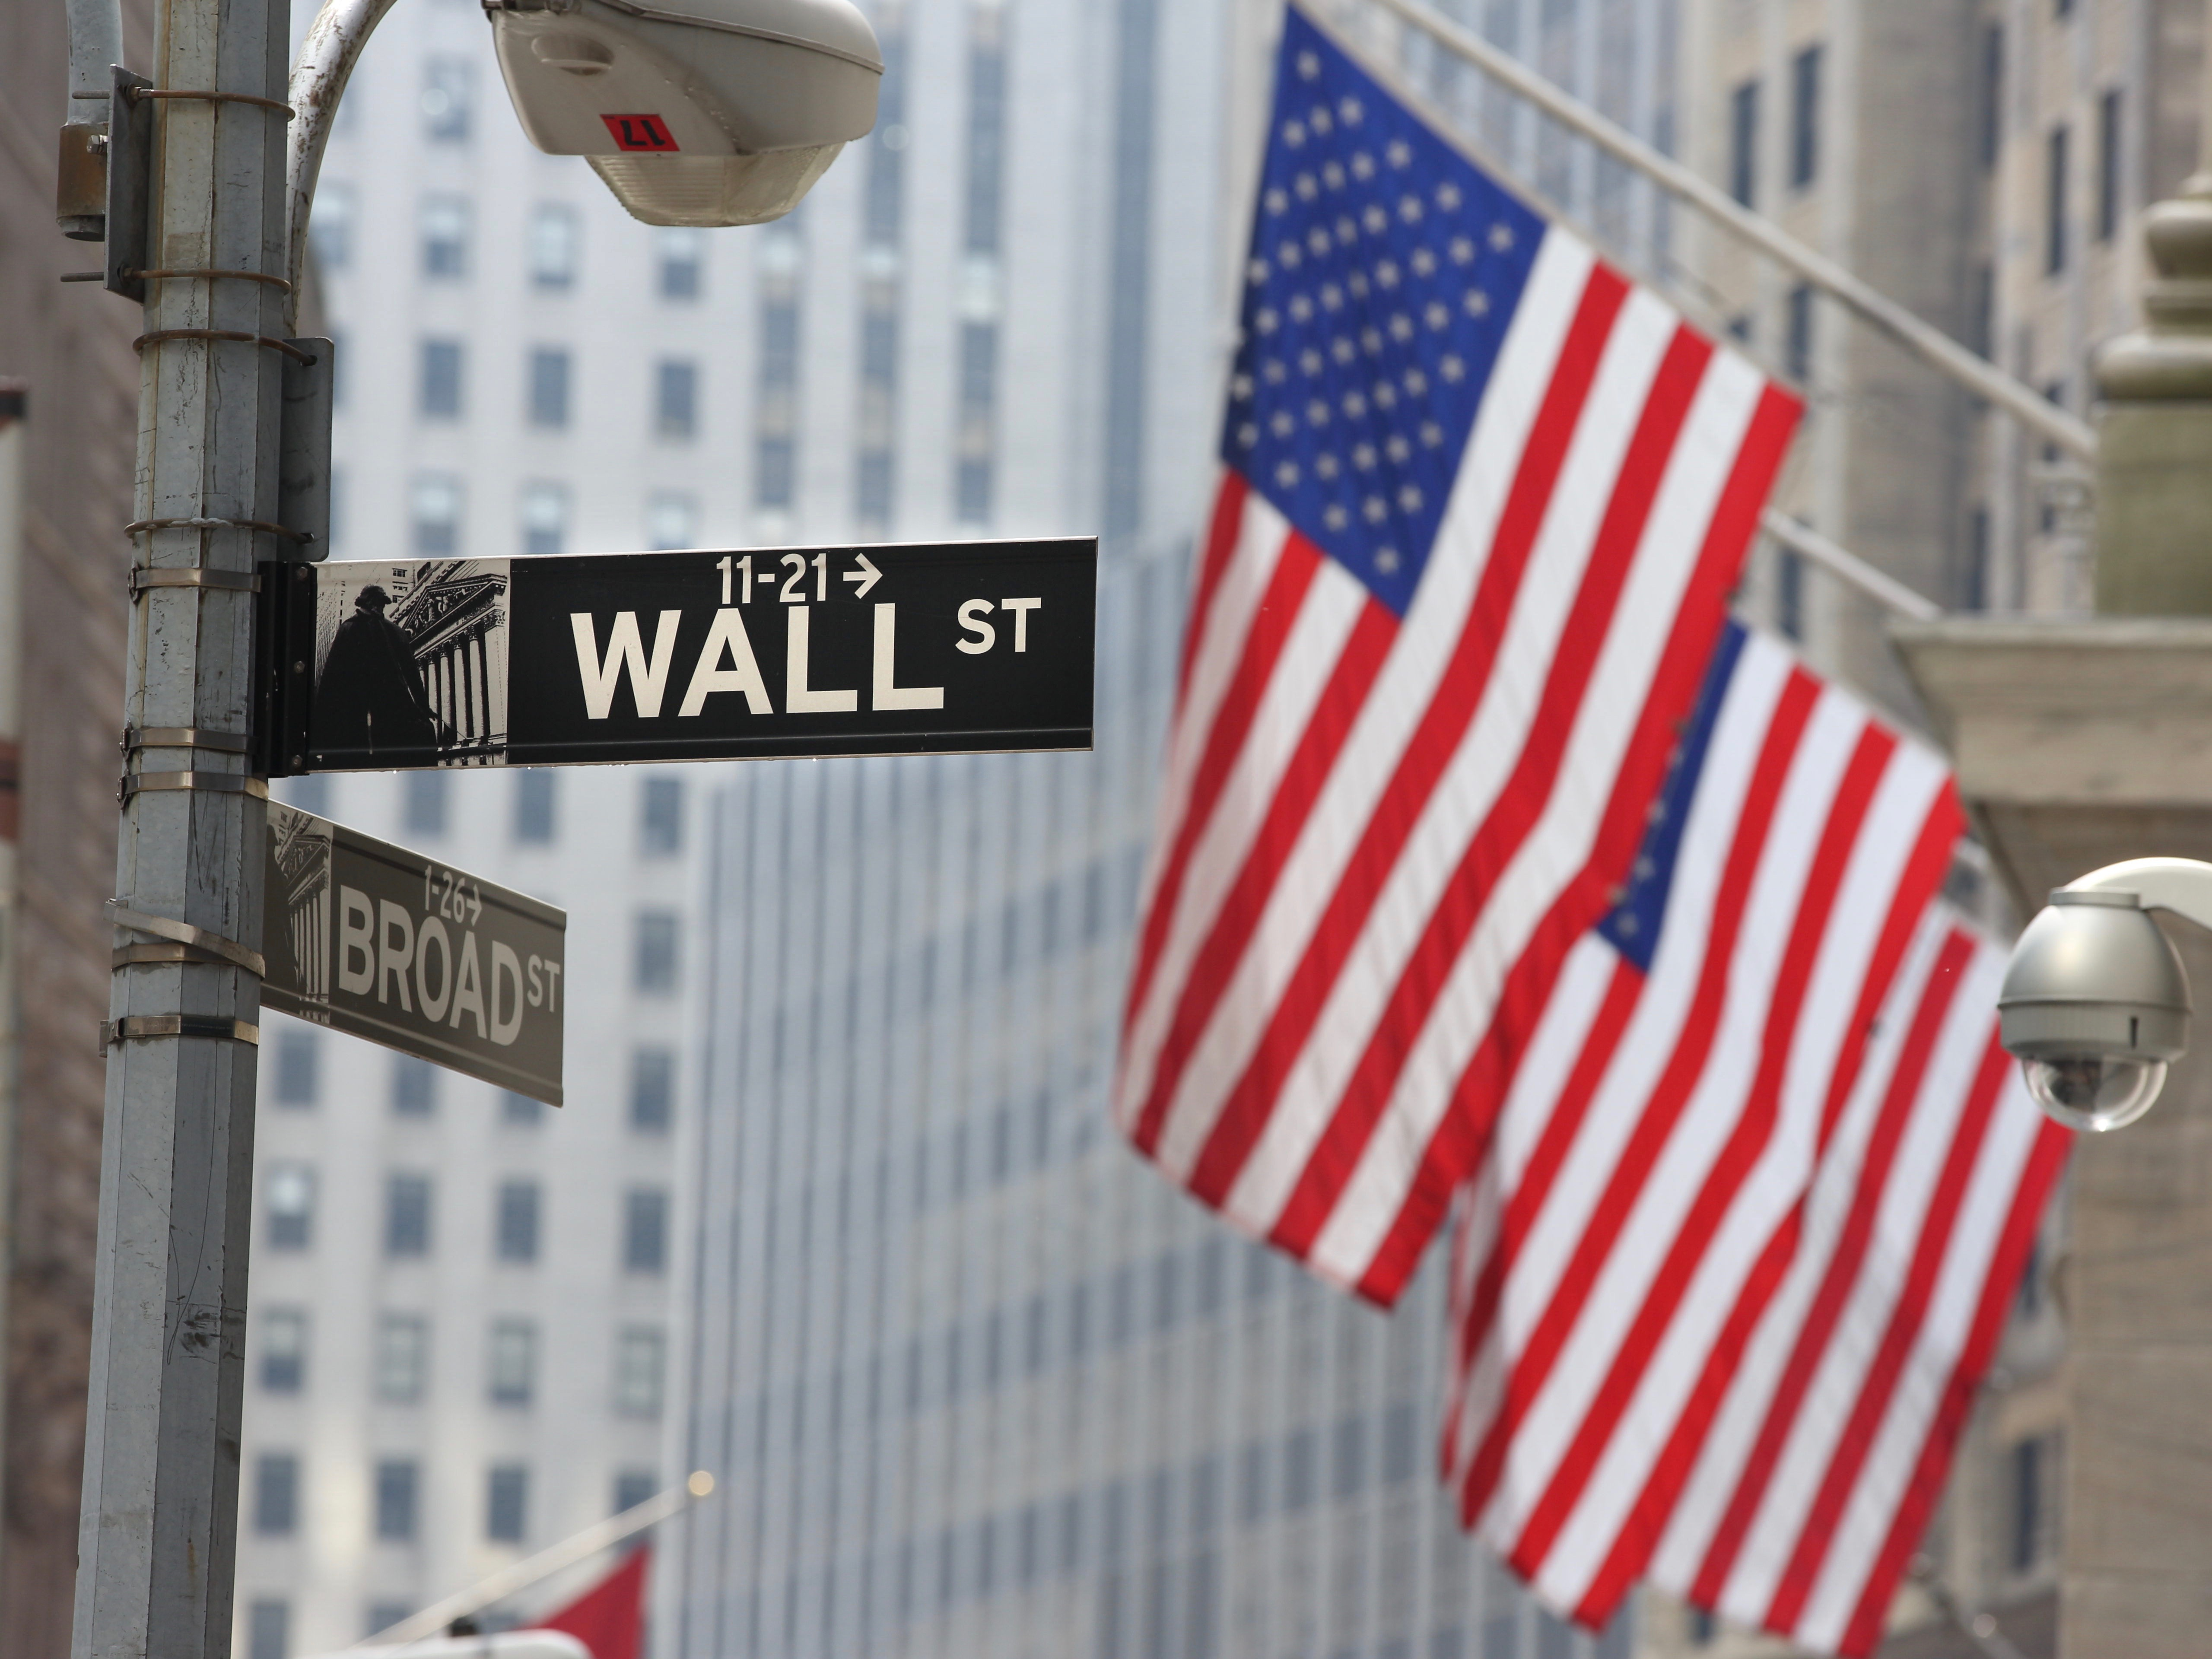 Wall Street and the New York Stock Exchange, Downtown Financial District, Manhattan, New York City,